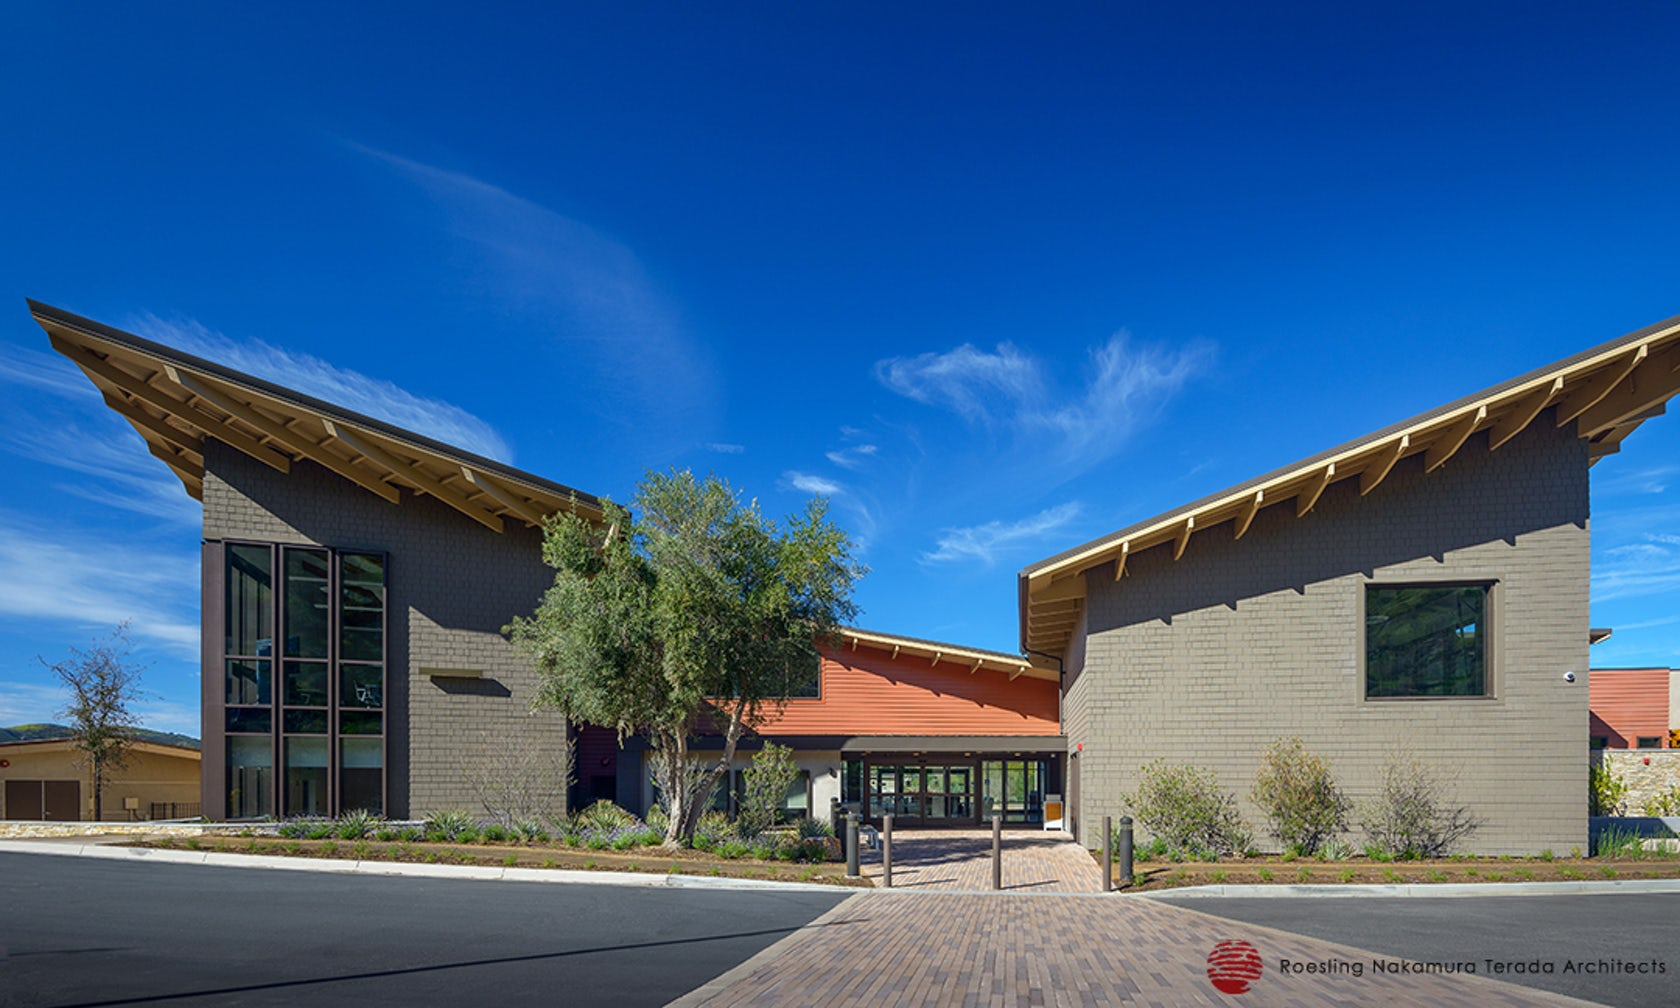 Agoura Hills Recreation Center